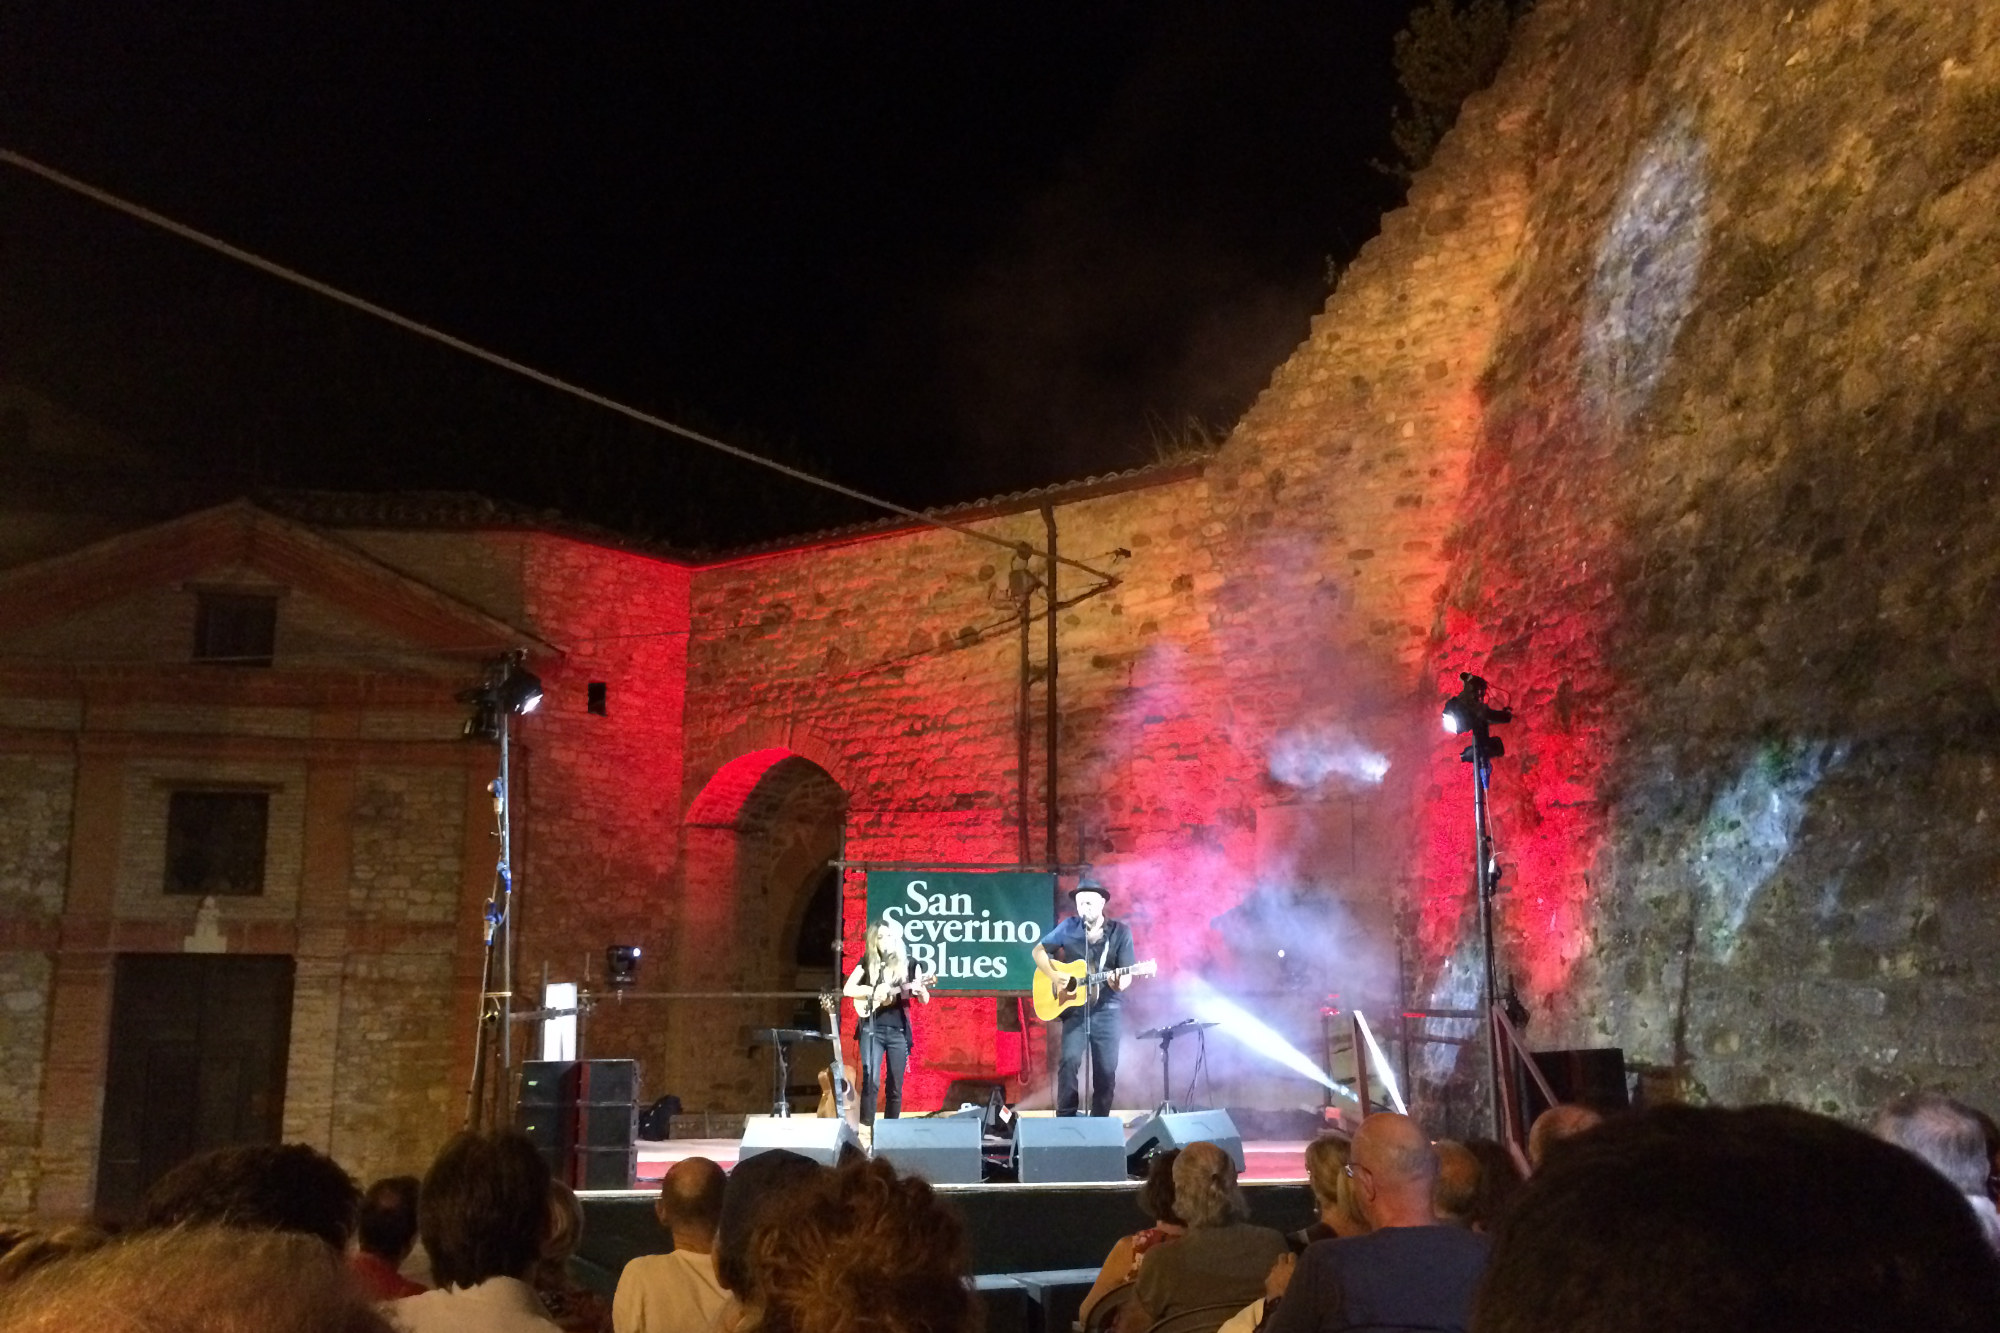 outside concert during san severino blues festival